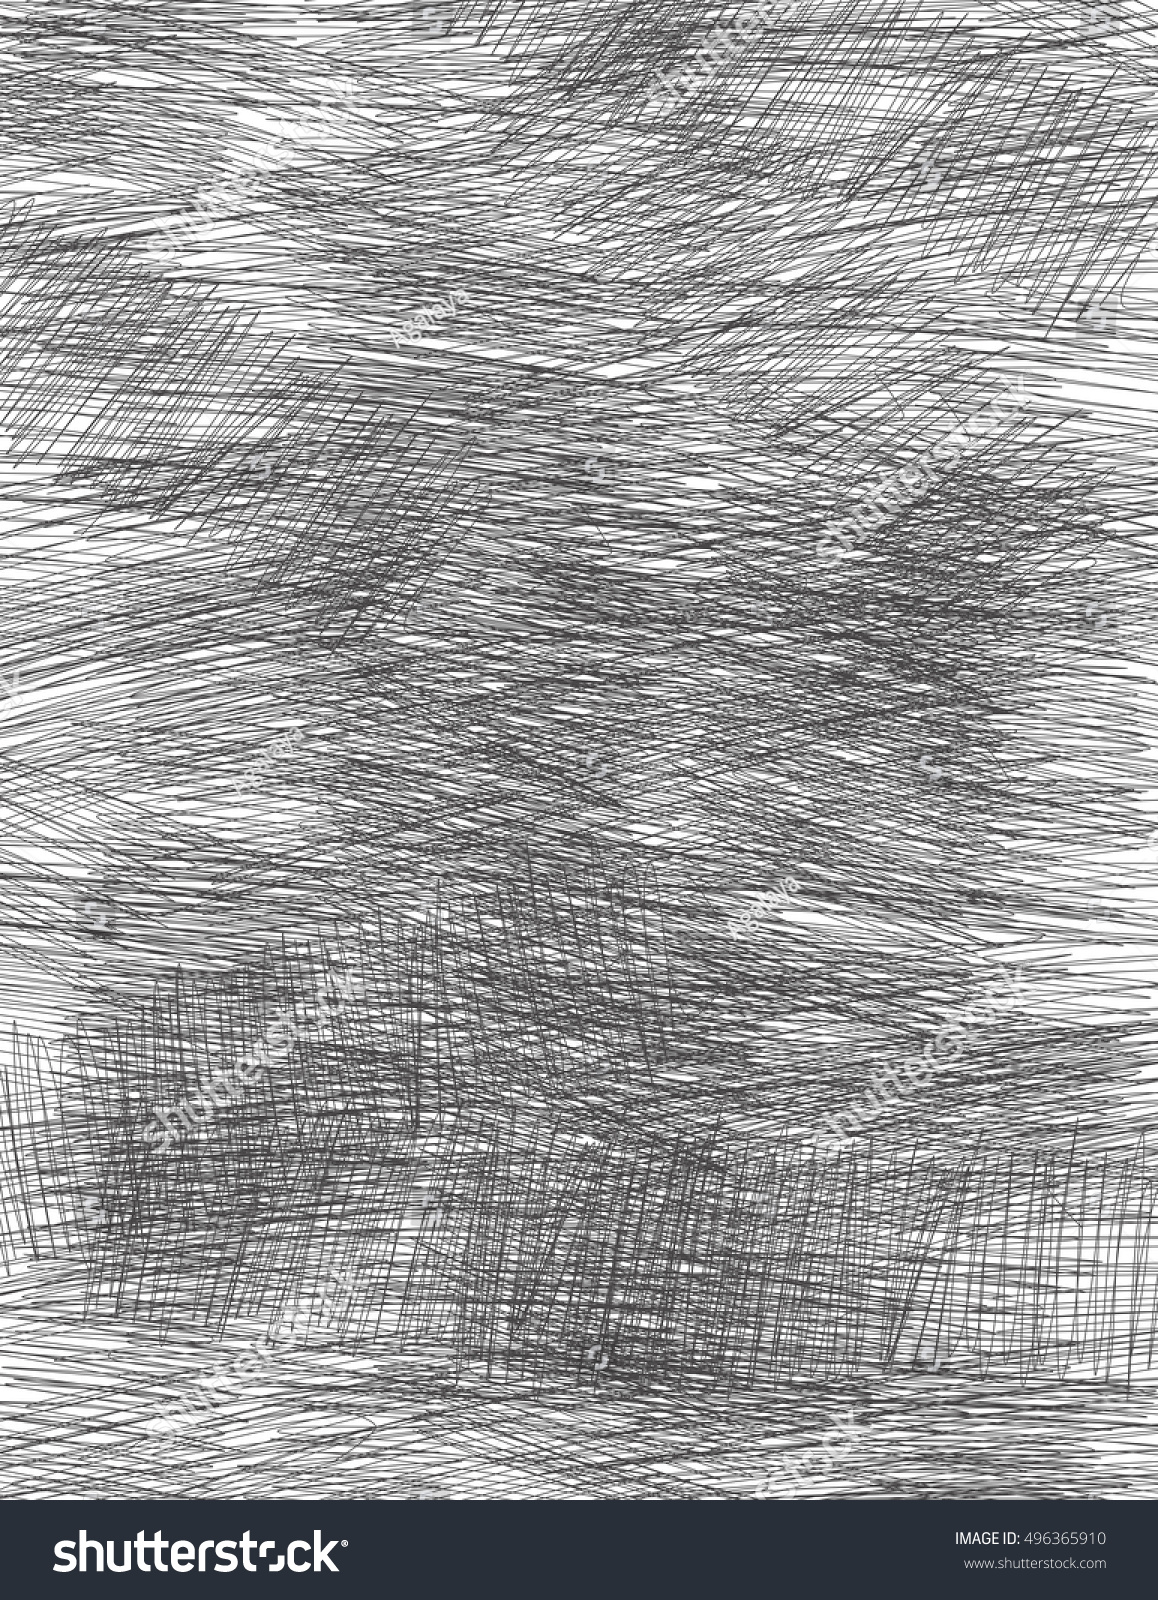 The shaded gray background. White shading on a dark background. Drawing by  hand.